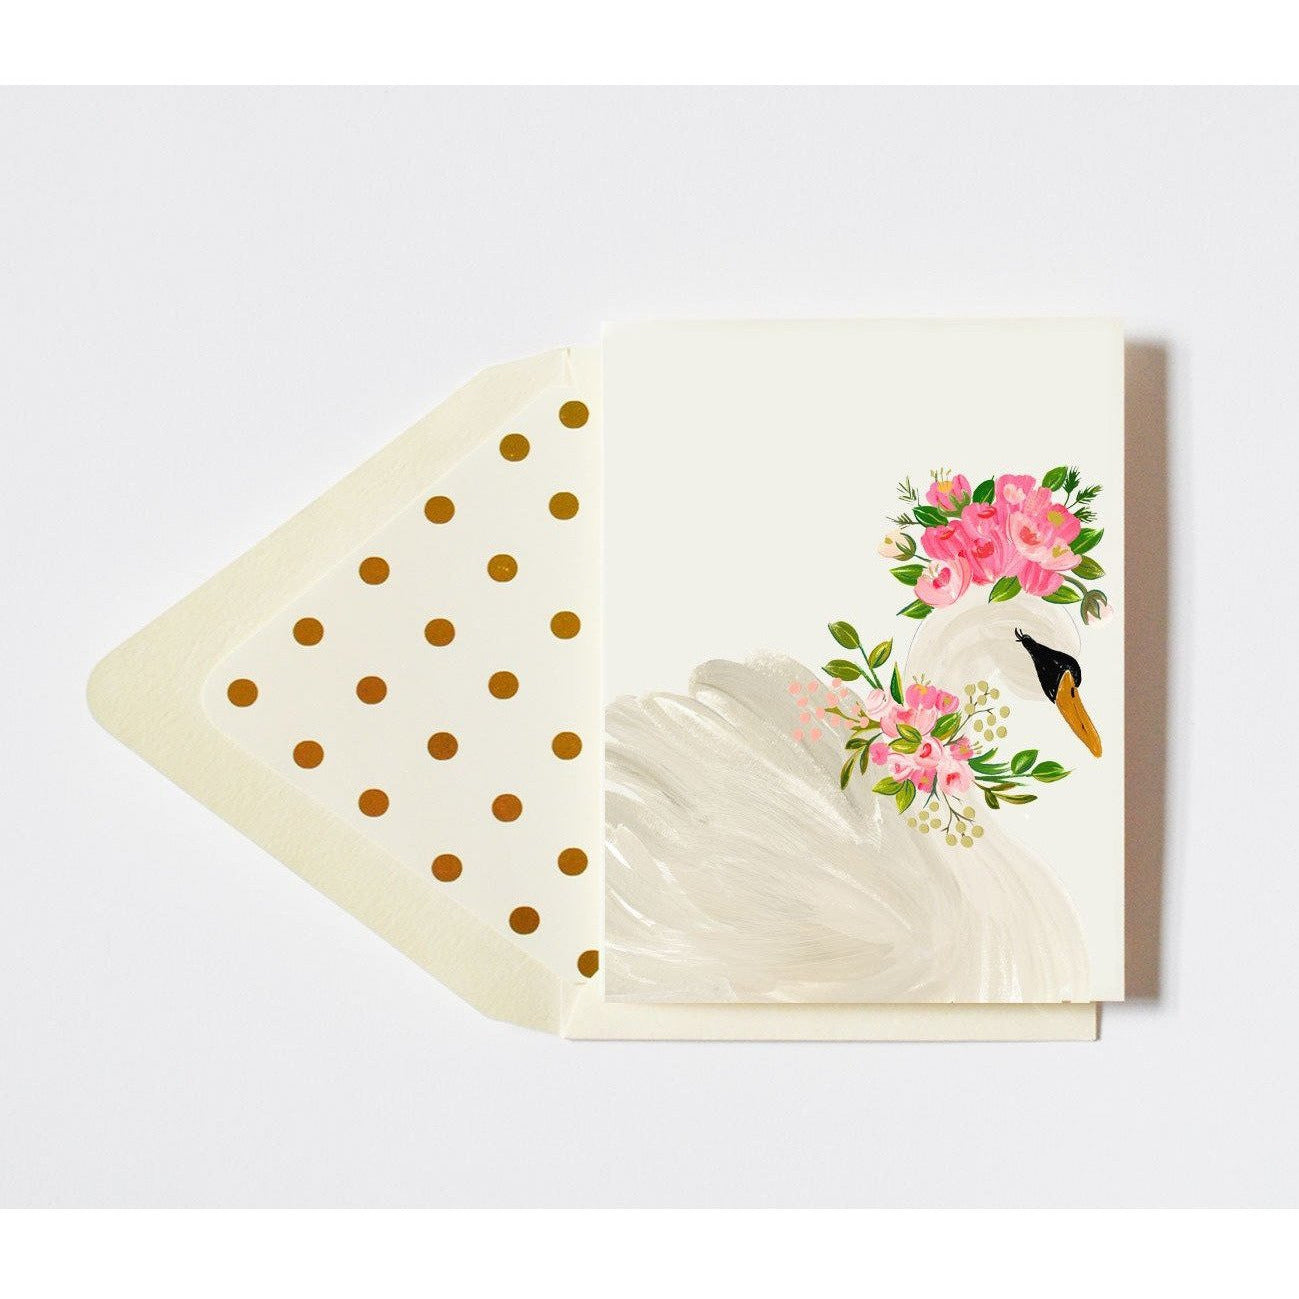 Floral Crowned Swan Card Blank - The First Snow